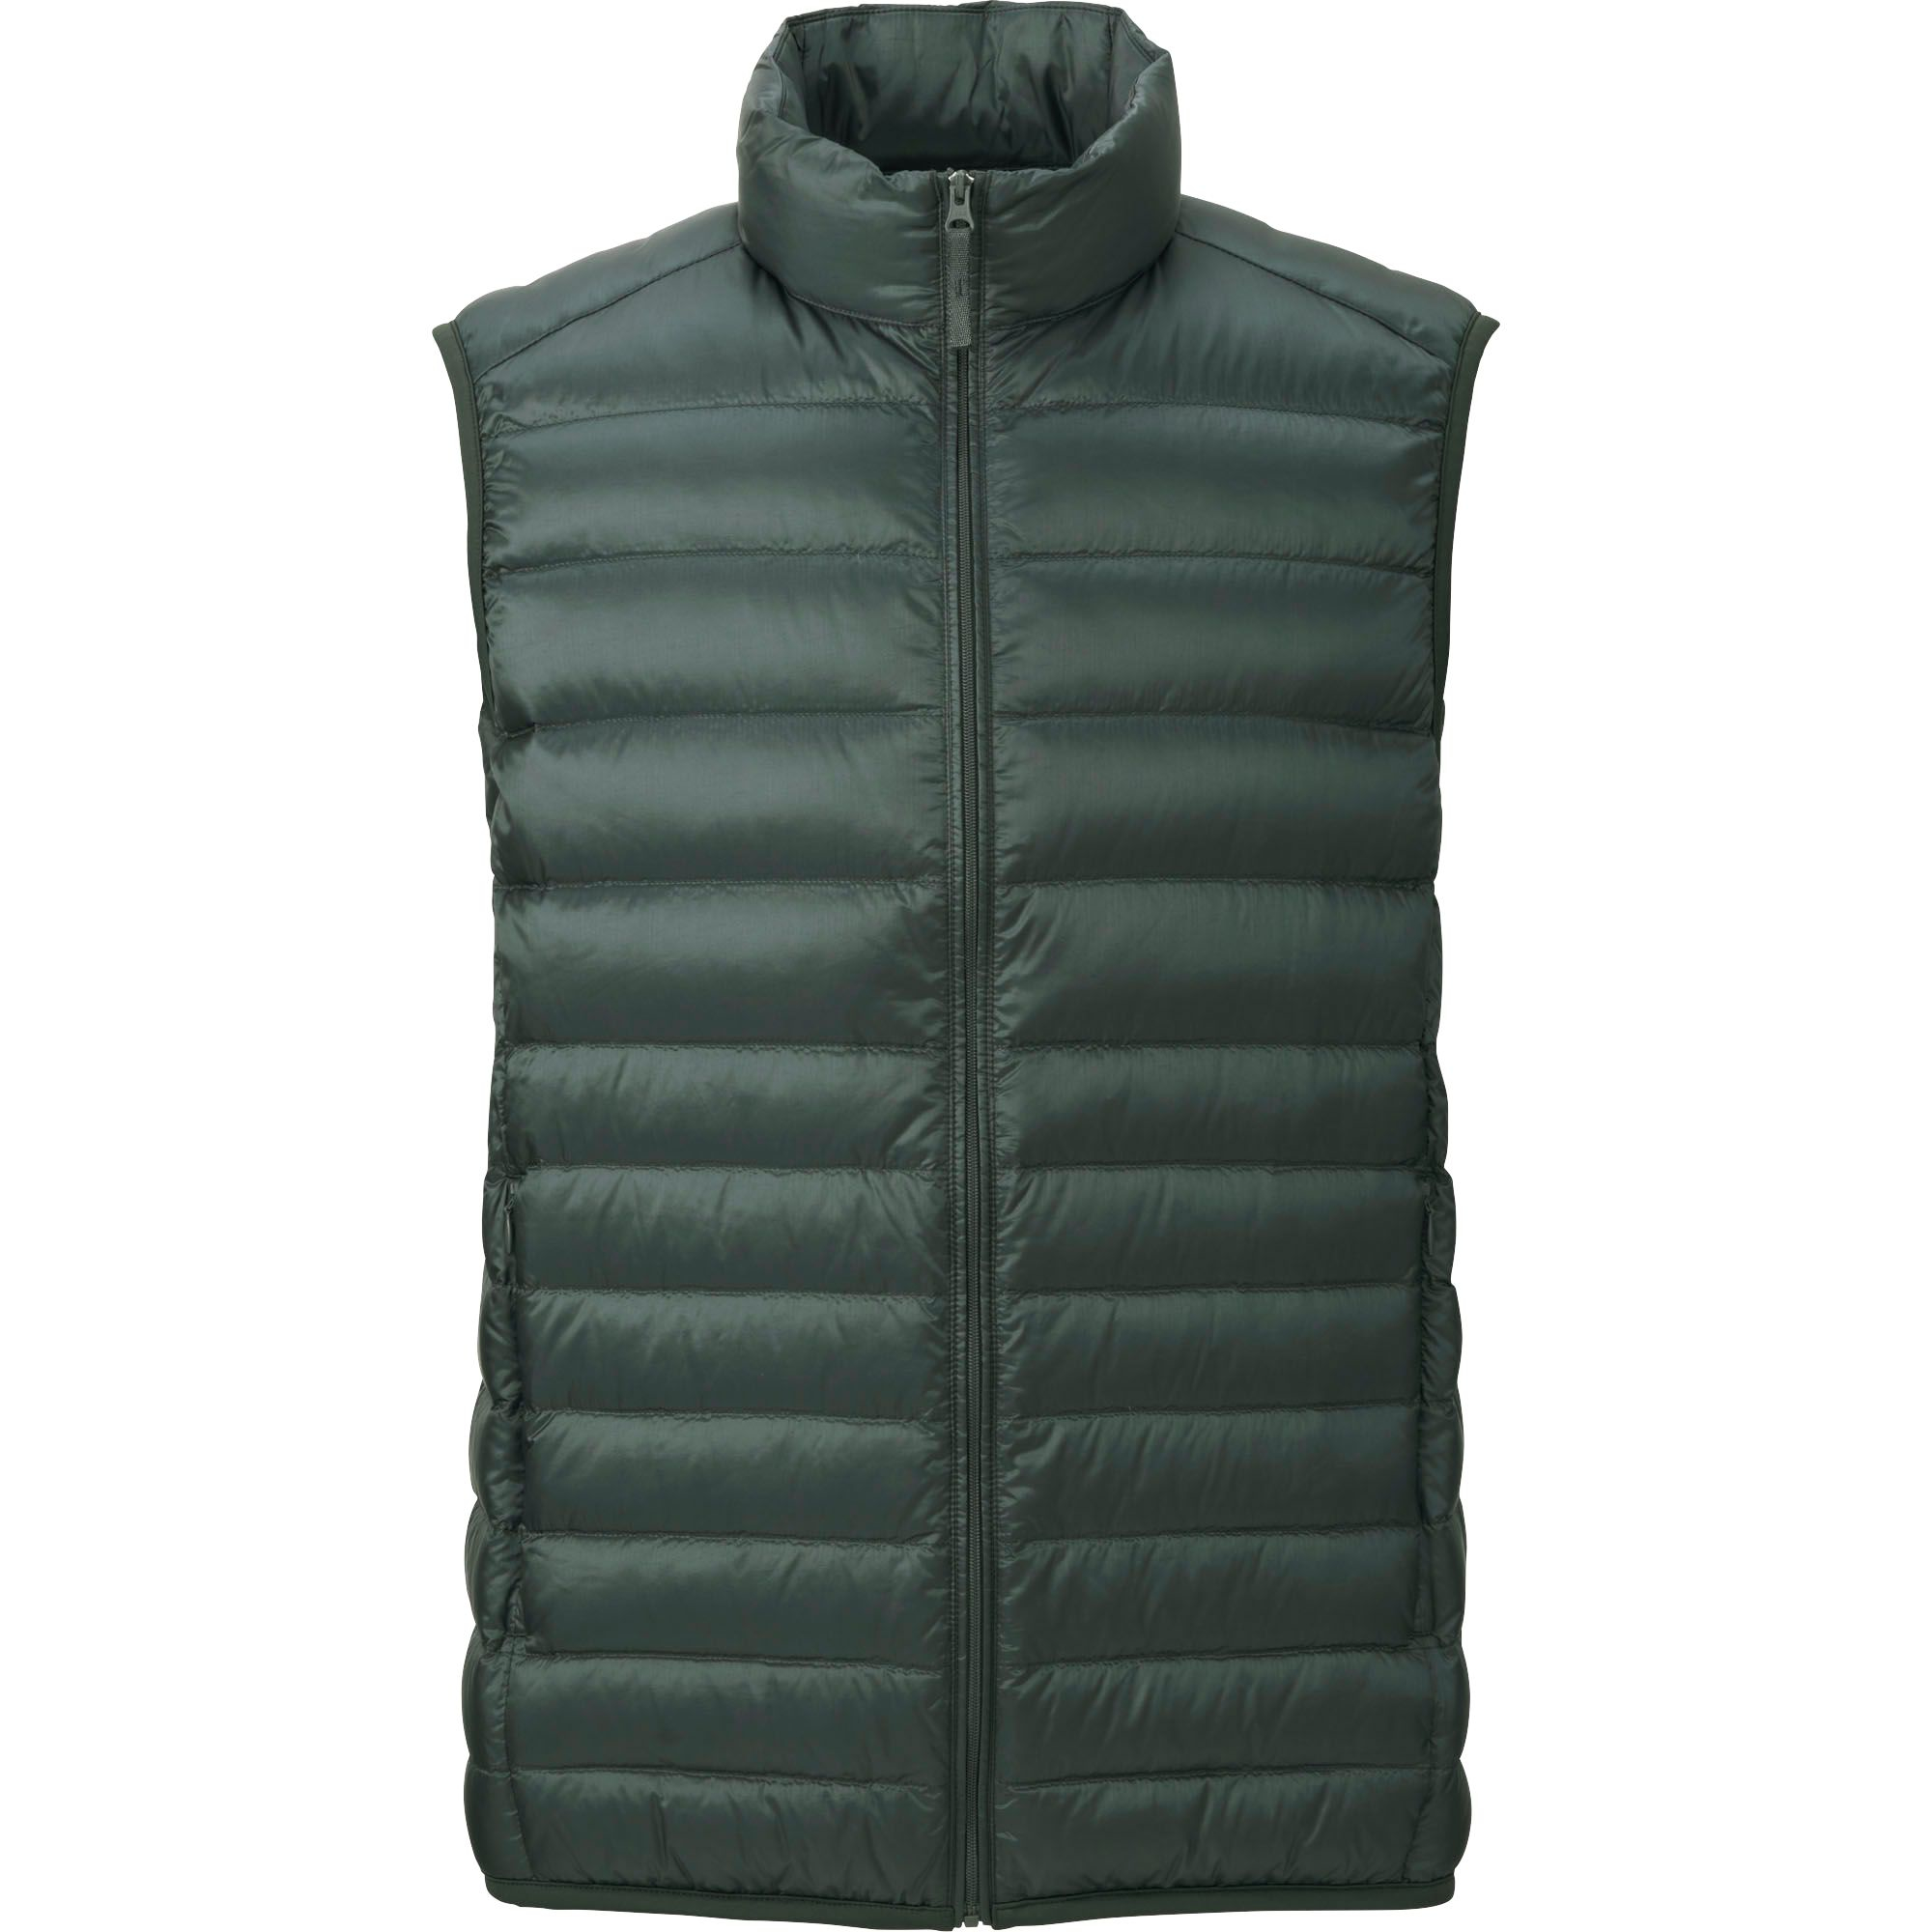 Uniqlo Men S Ultra Light Down Vest In Green For Men Olive